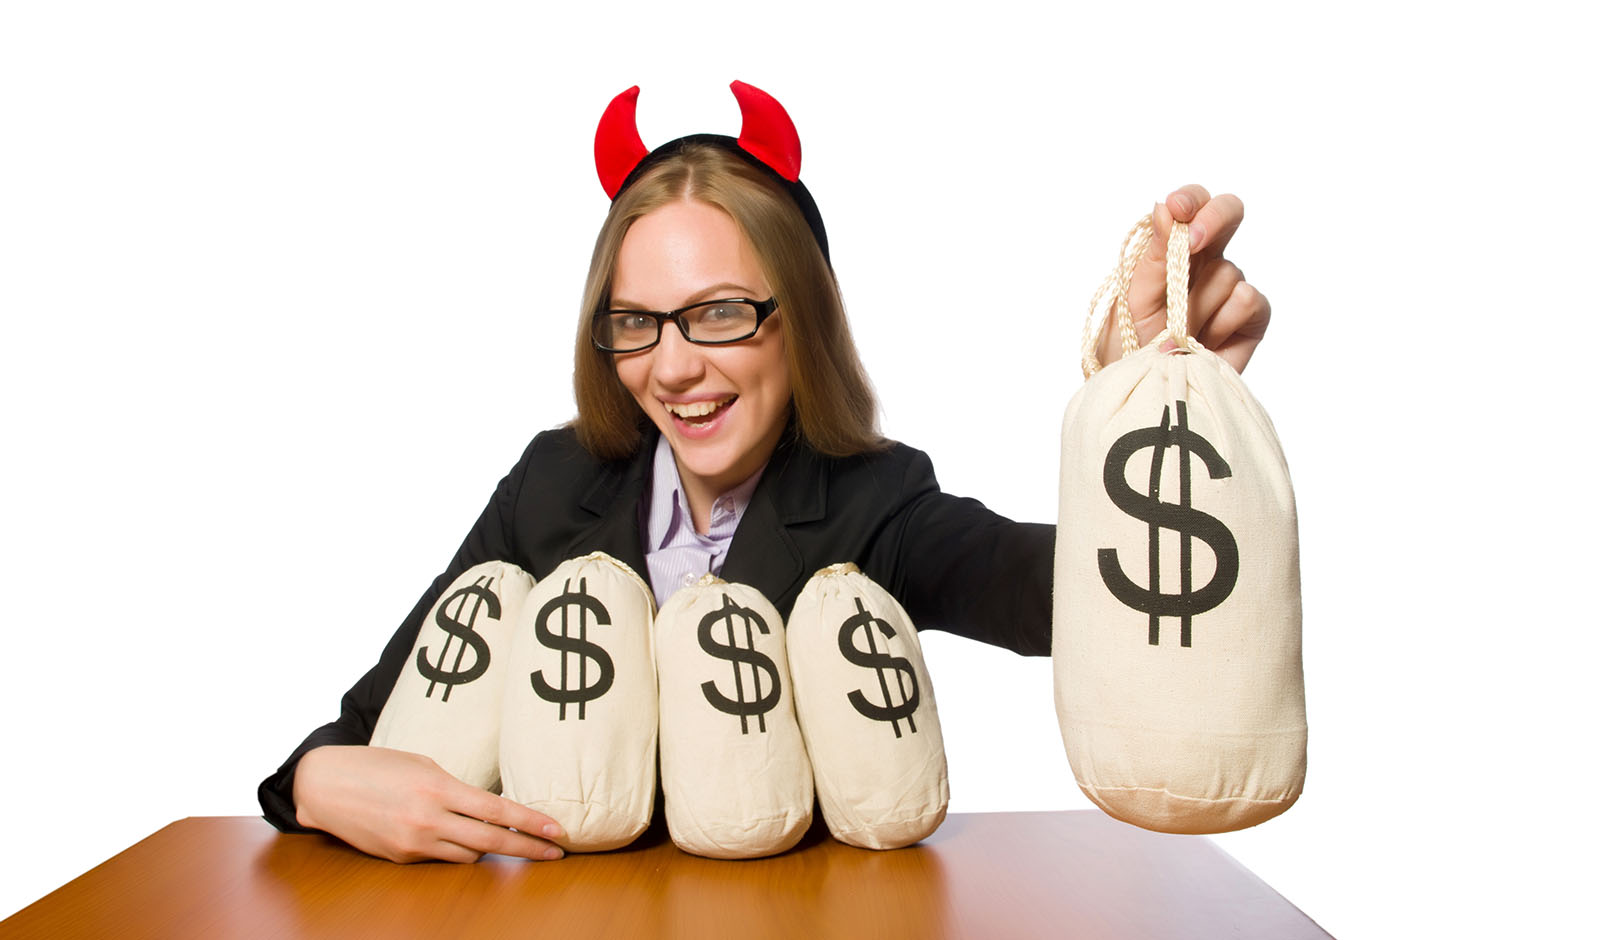 Female employee with money sacks on her table